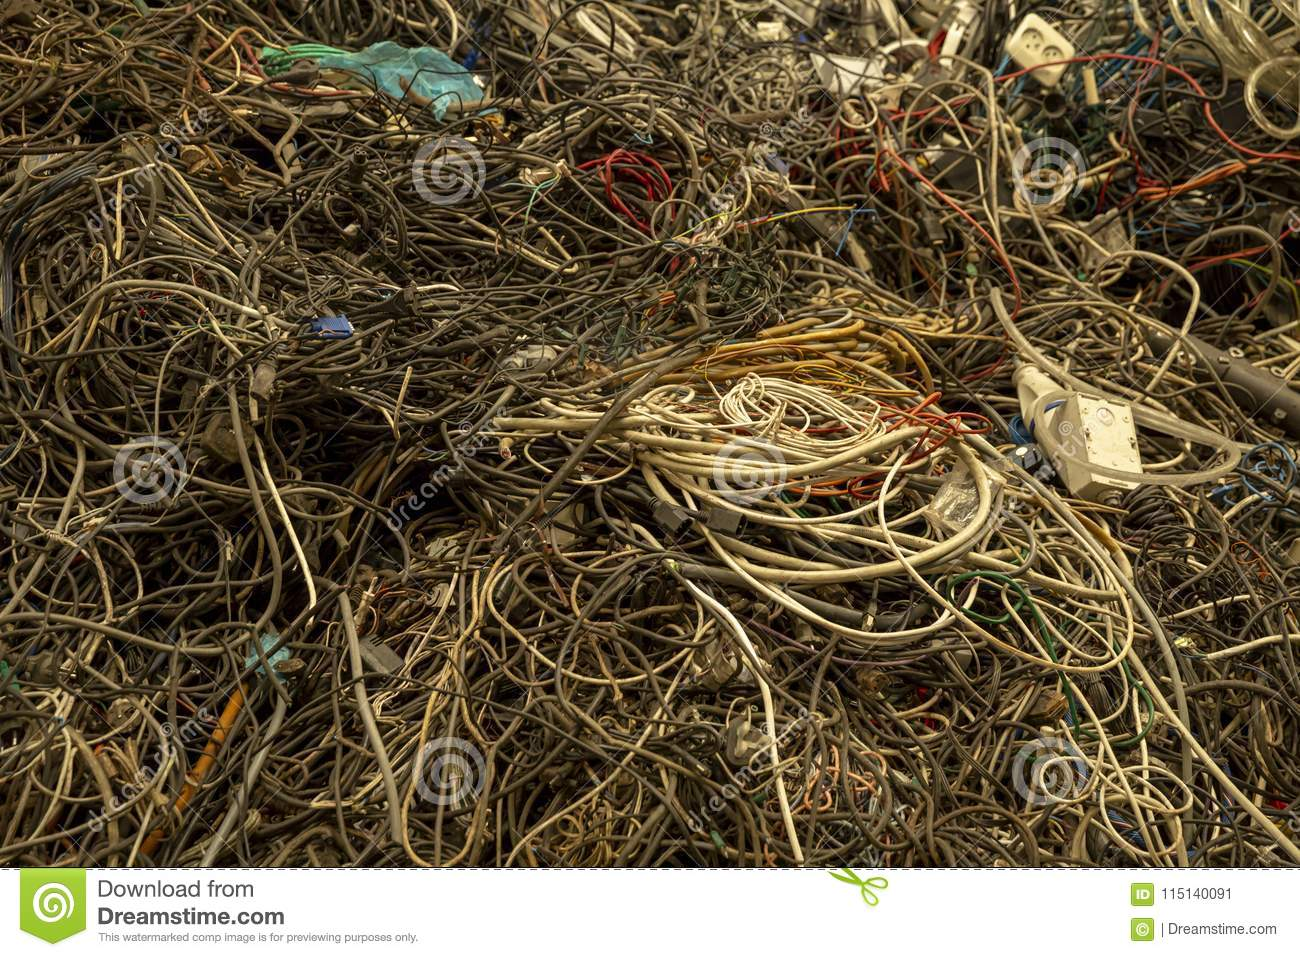 Cables tangled up stock image  Image of centre, rope - 115140091